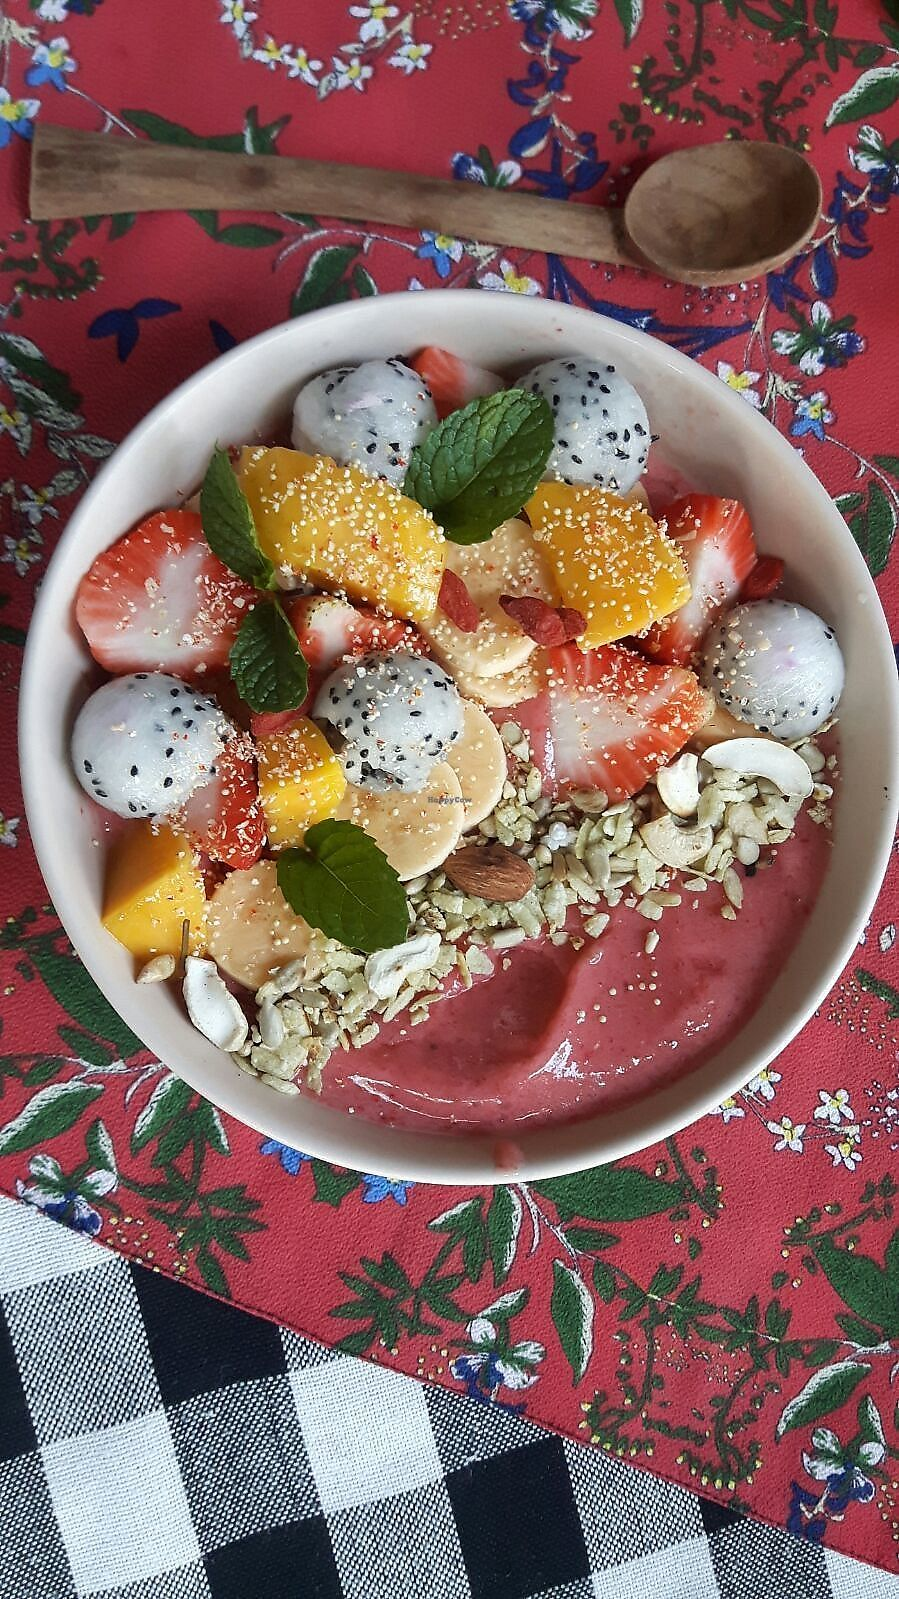 """Photo of Little Good Things  by <a href=""""/members/profile/CharityBosua"""">CharityBosua</a> <br/>Smoothiebowl <br/> February 22, 2018  - <a href='/contact/abuse/image/85437/362424'>Report</a>"""